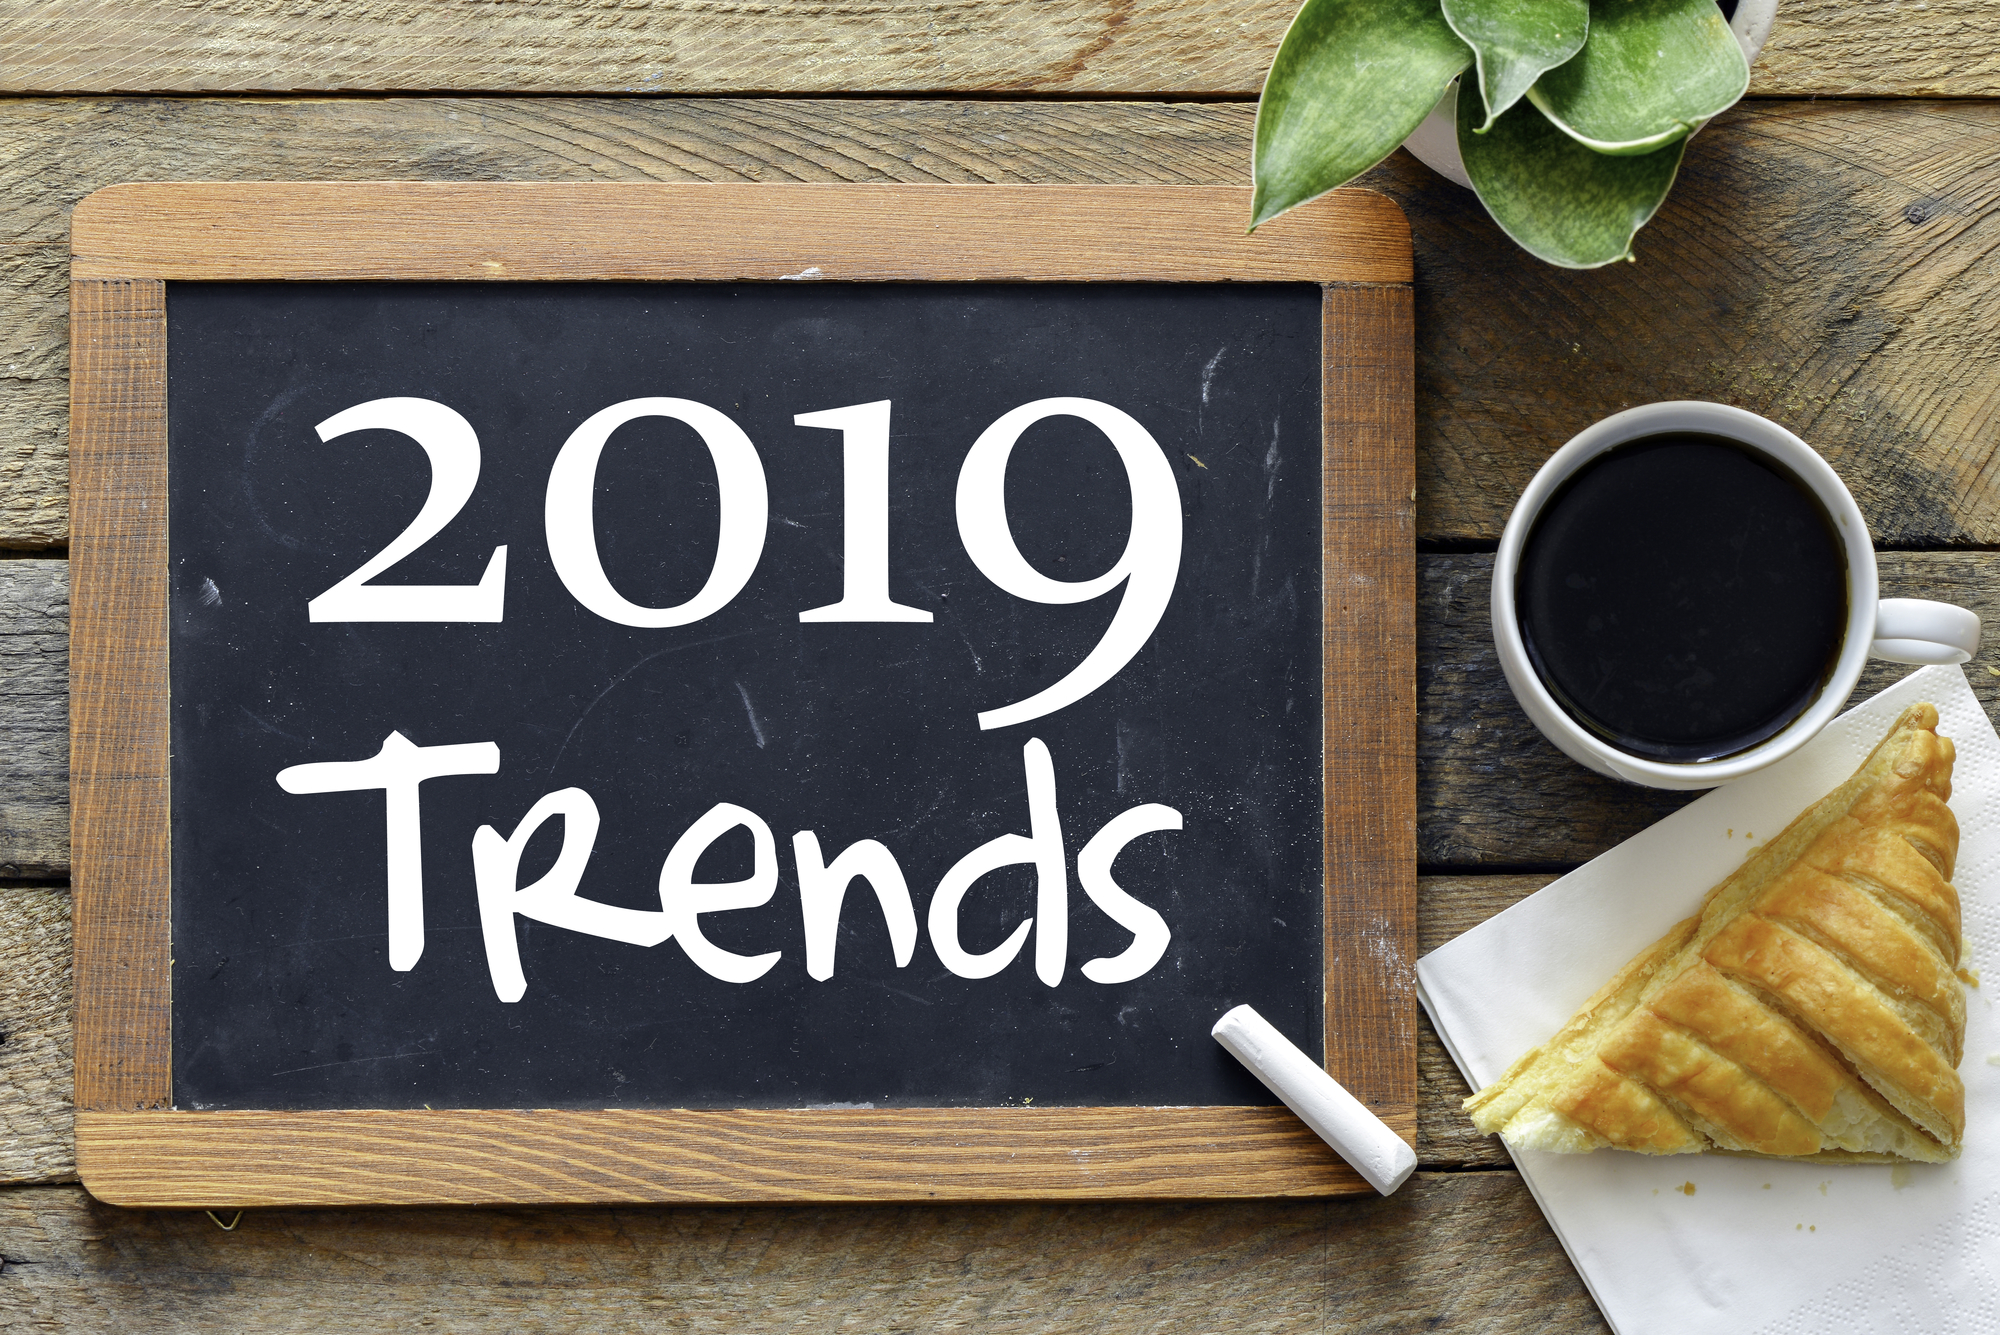 2019 Multifamily Marketing Trends On Chalk Board